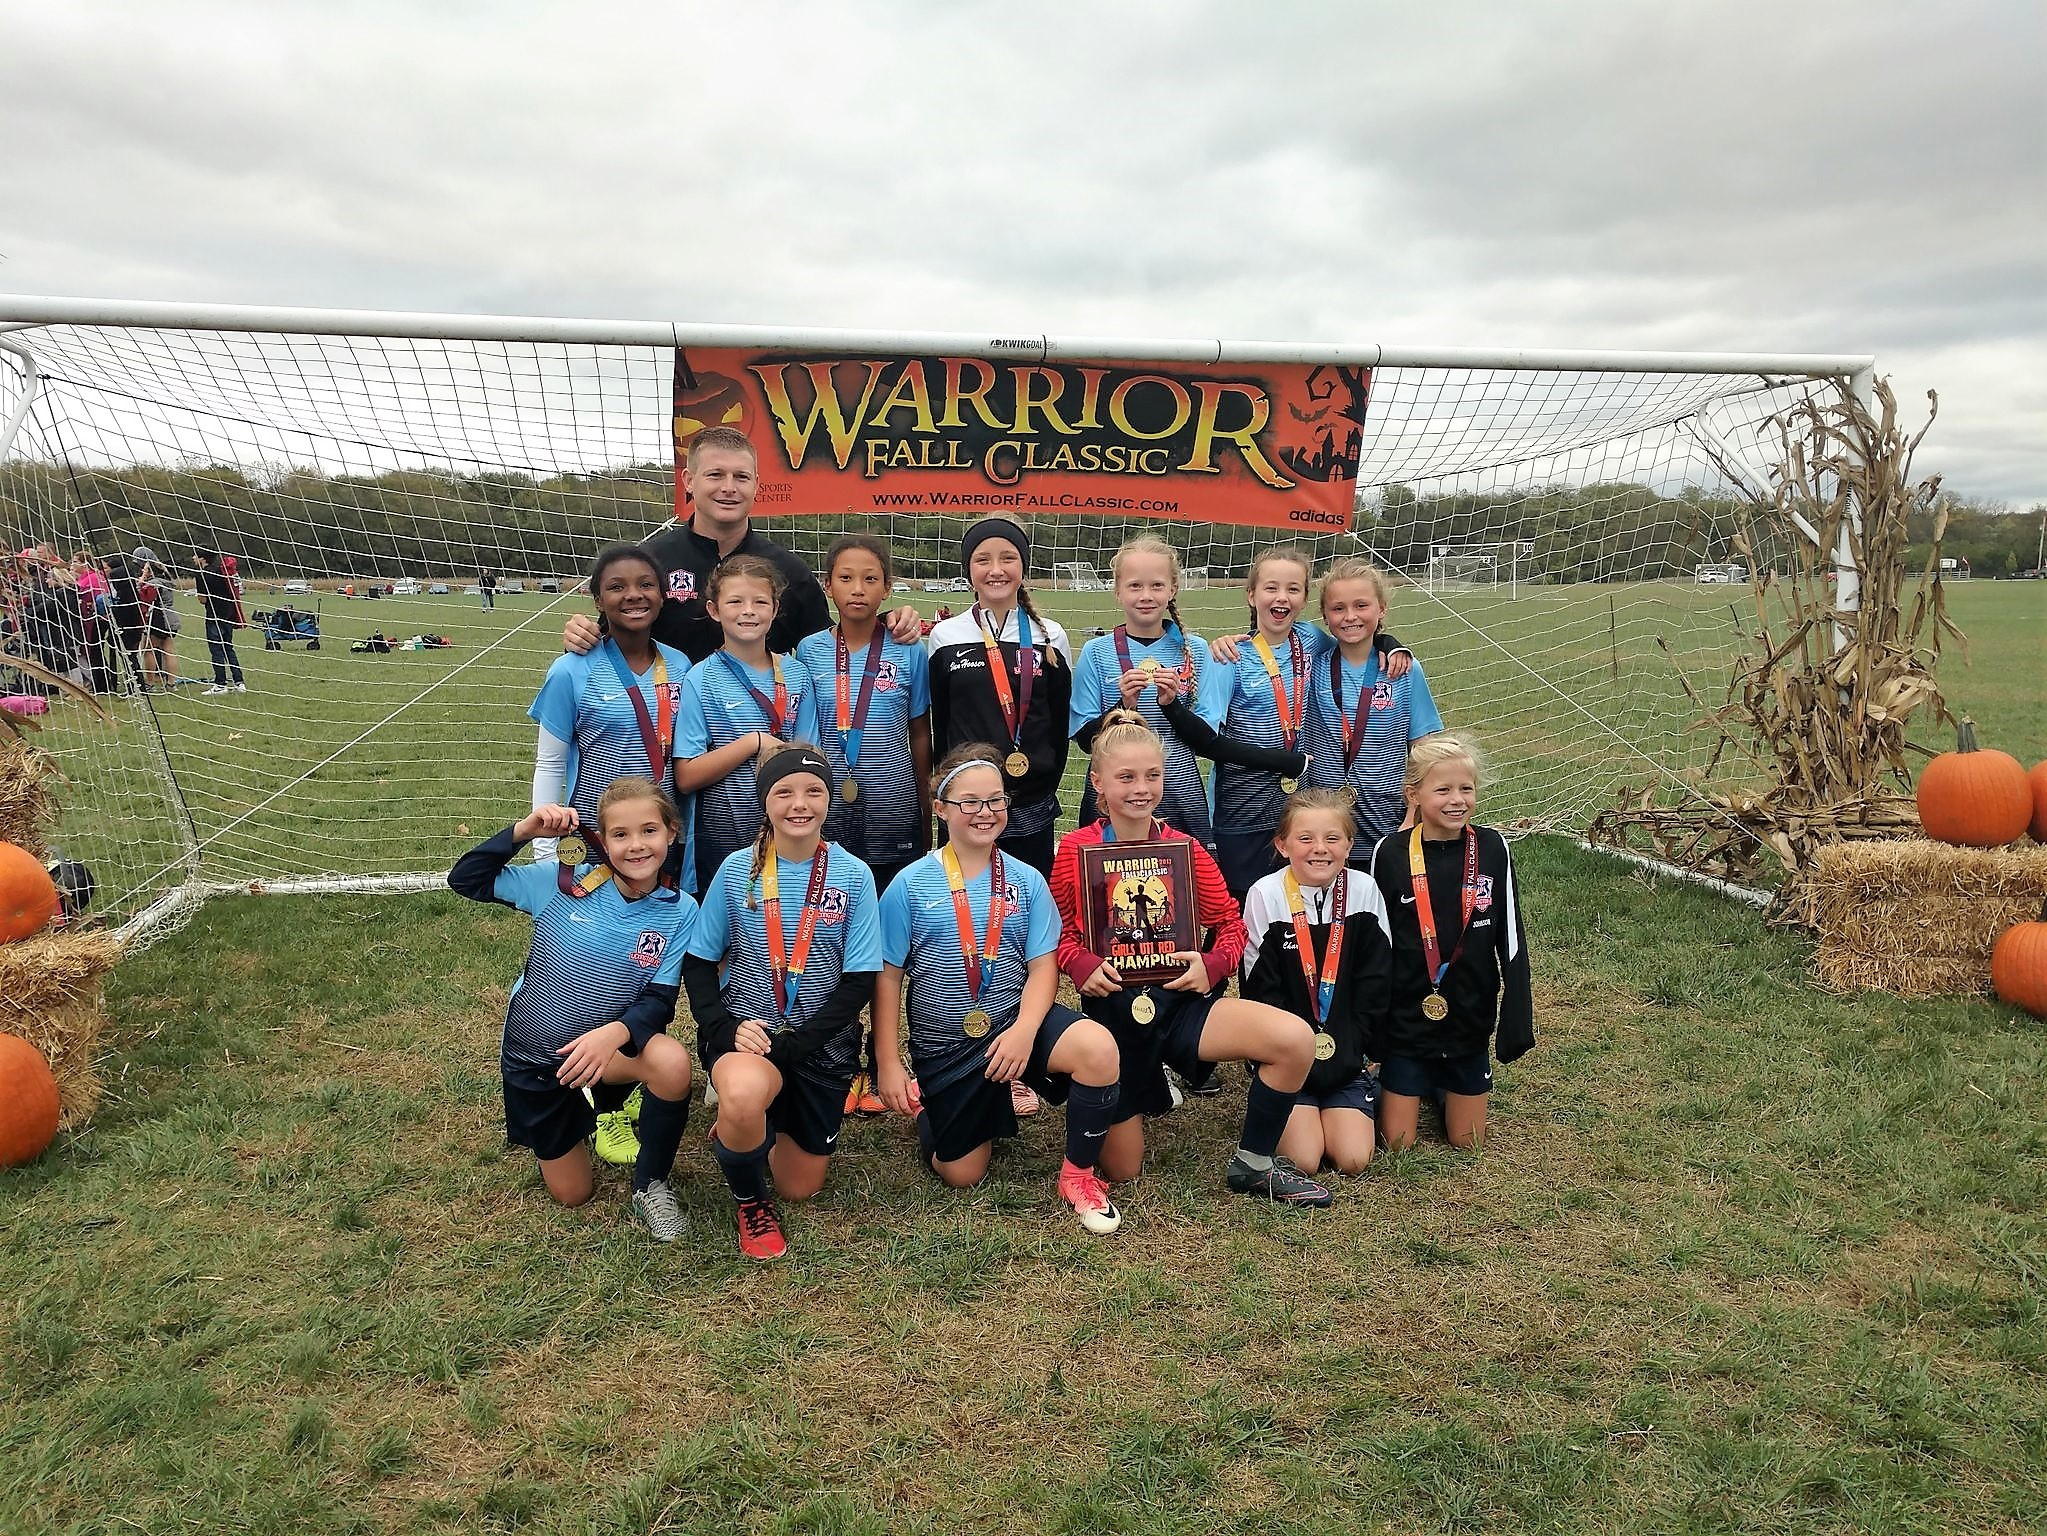 2007 Girls White are Warrior Classic Champs!